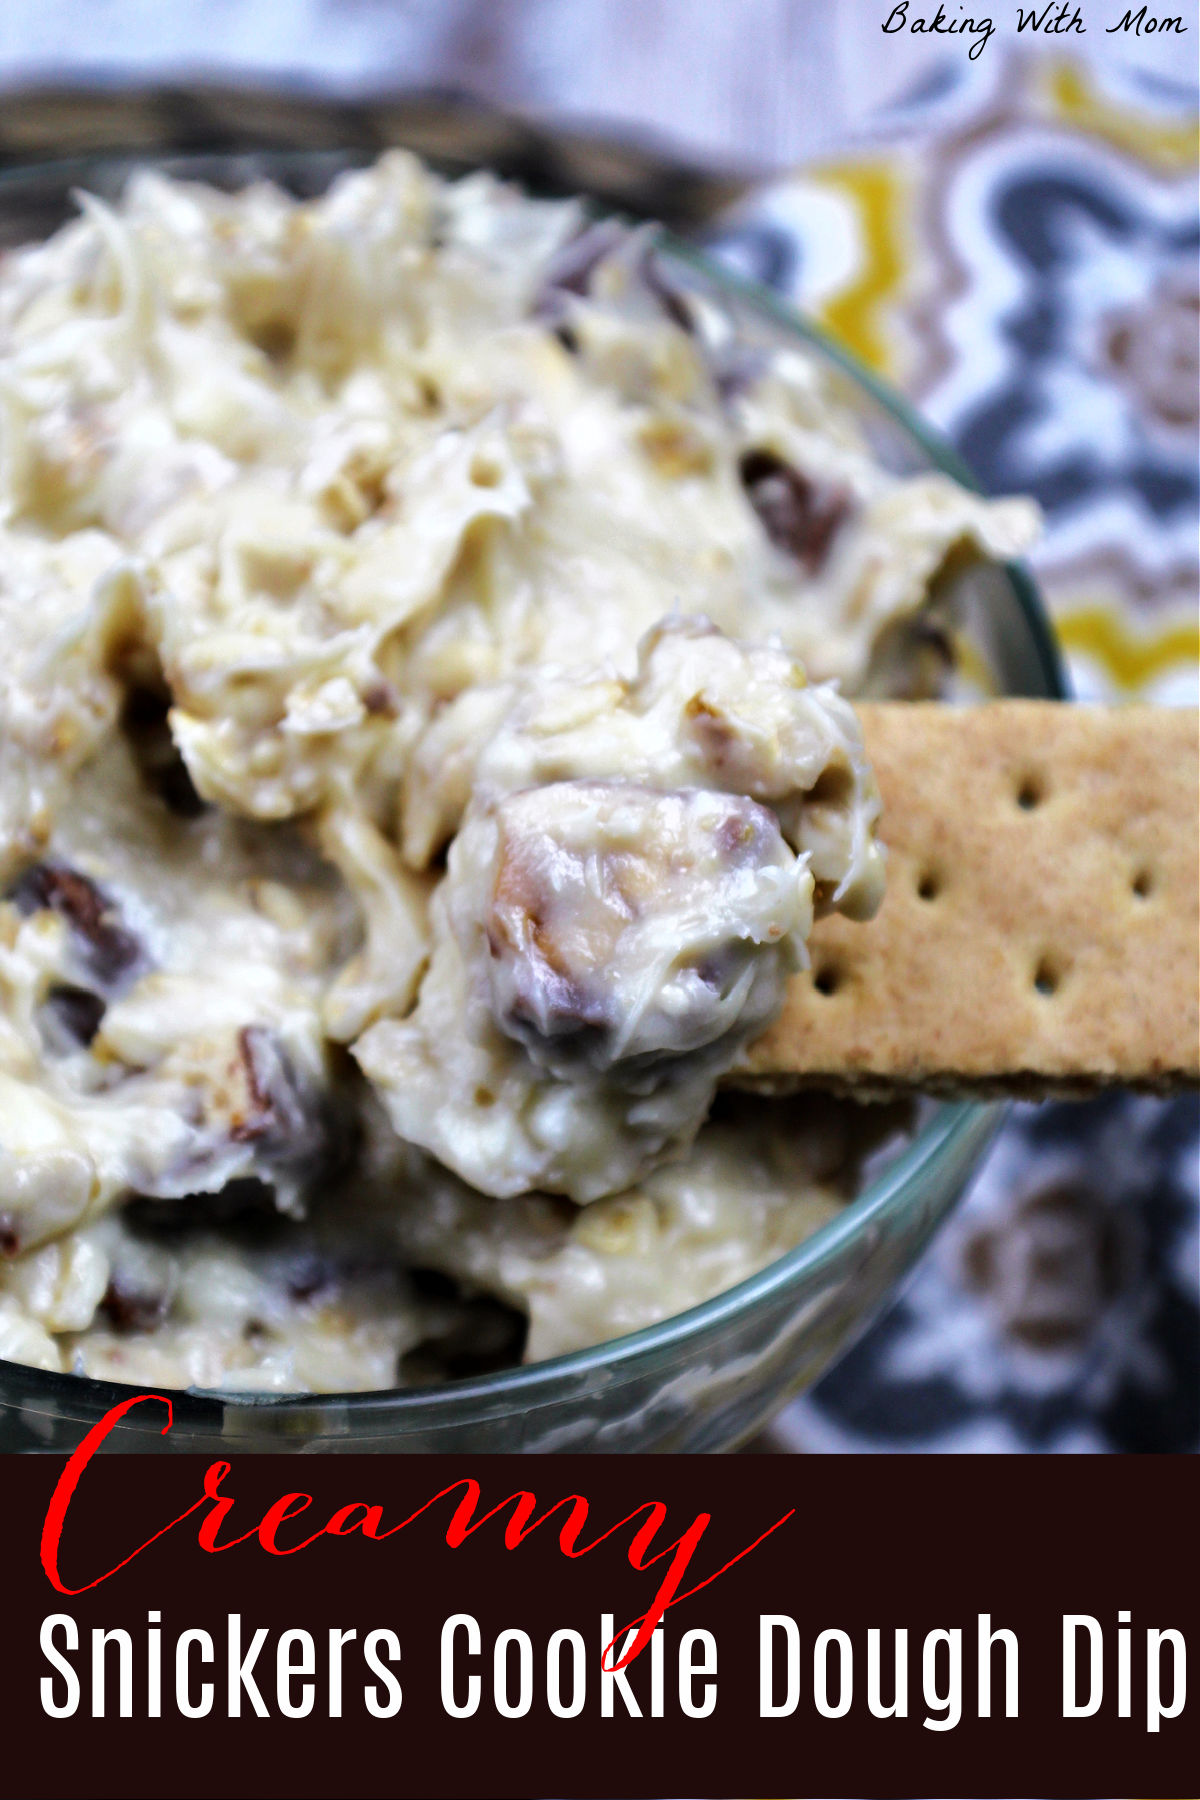 Cookie dough dip with snickers in a clear bowl with a yellow and gray towel laying besides.